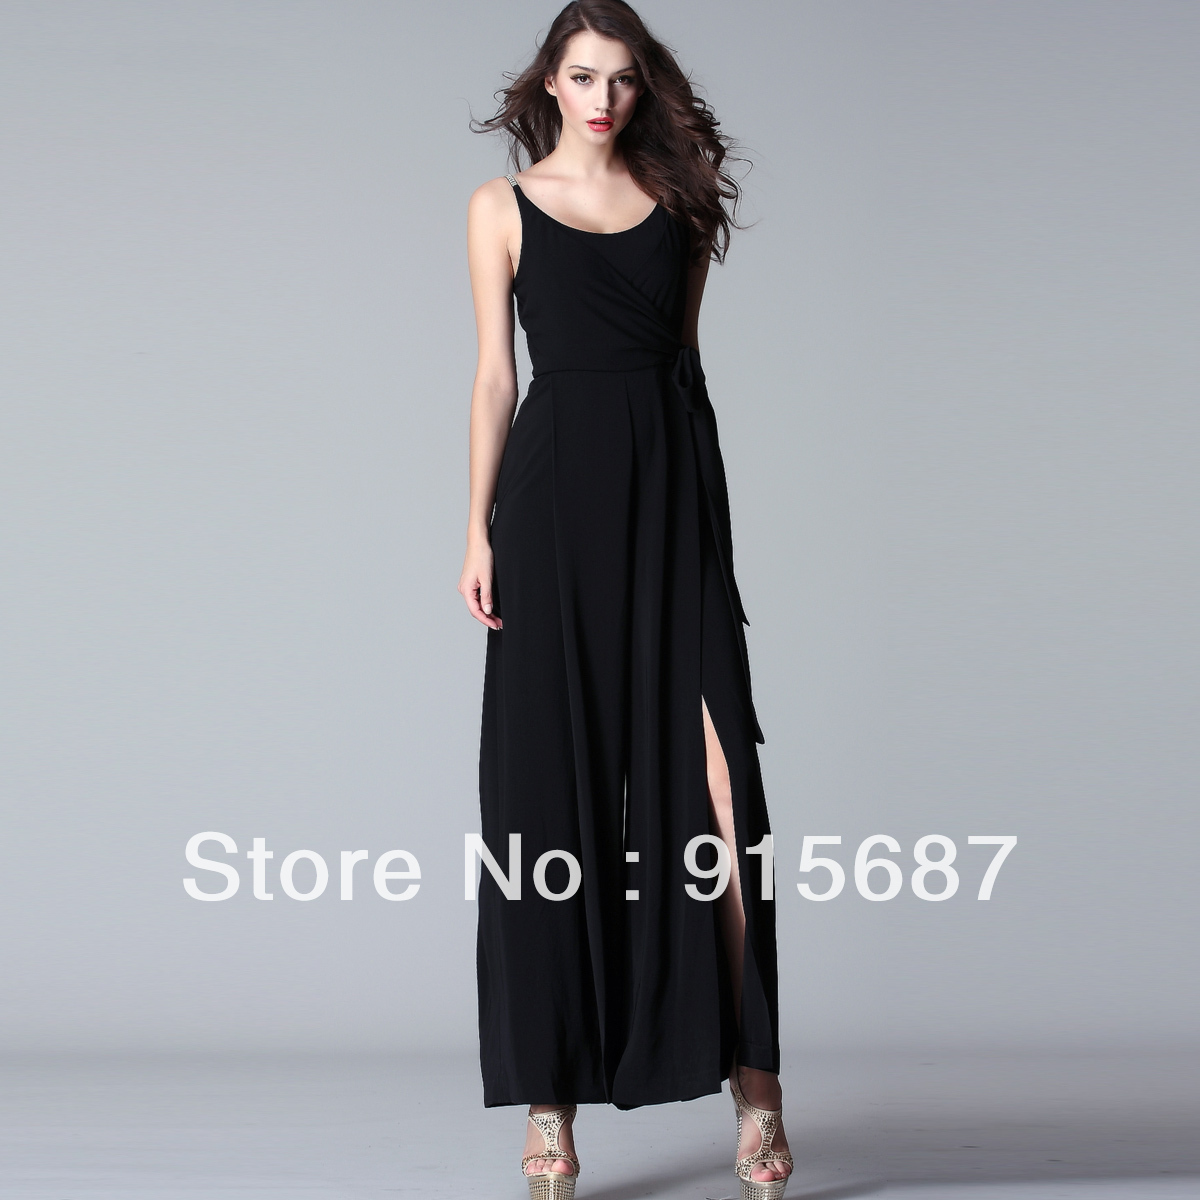 Free shipping 2013 new arrive  Cheongsam-style luxury diamond style long side slit the vertical texture Siamese pants Q